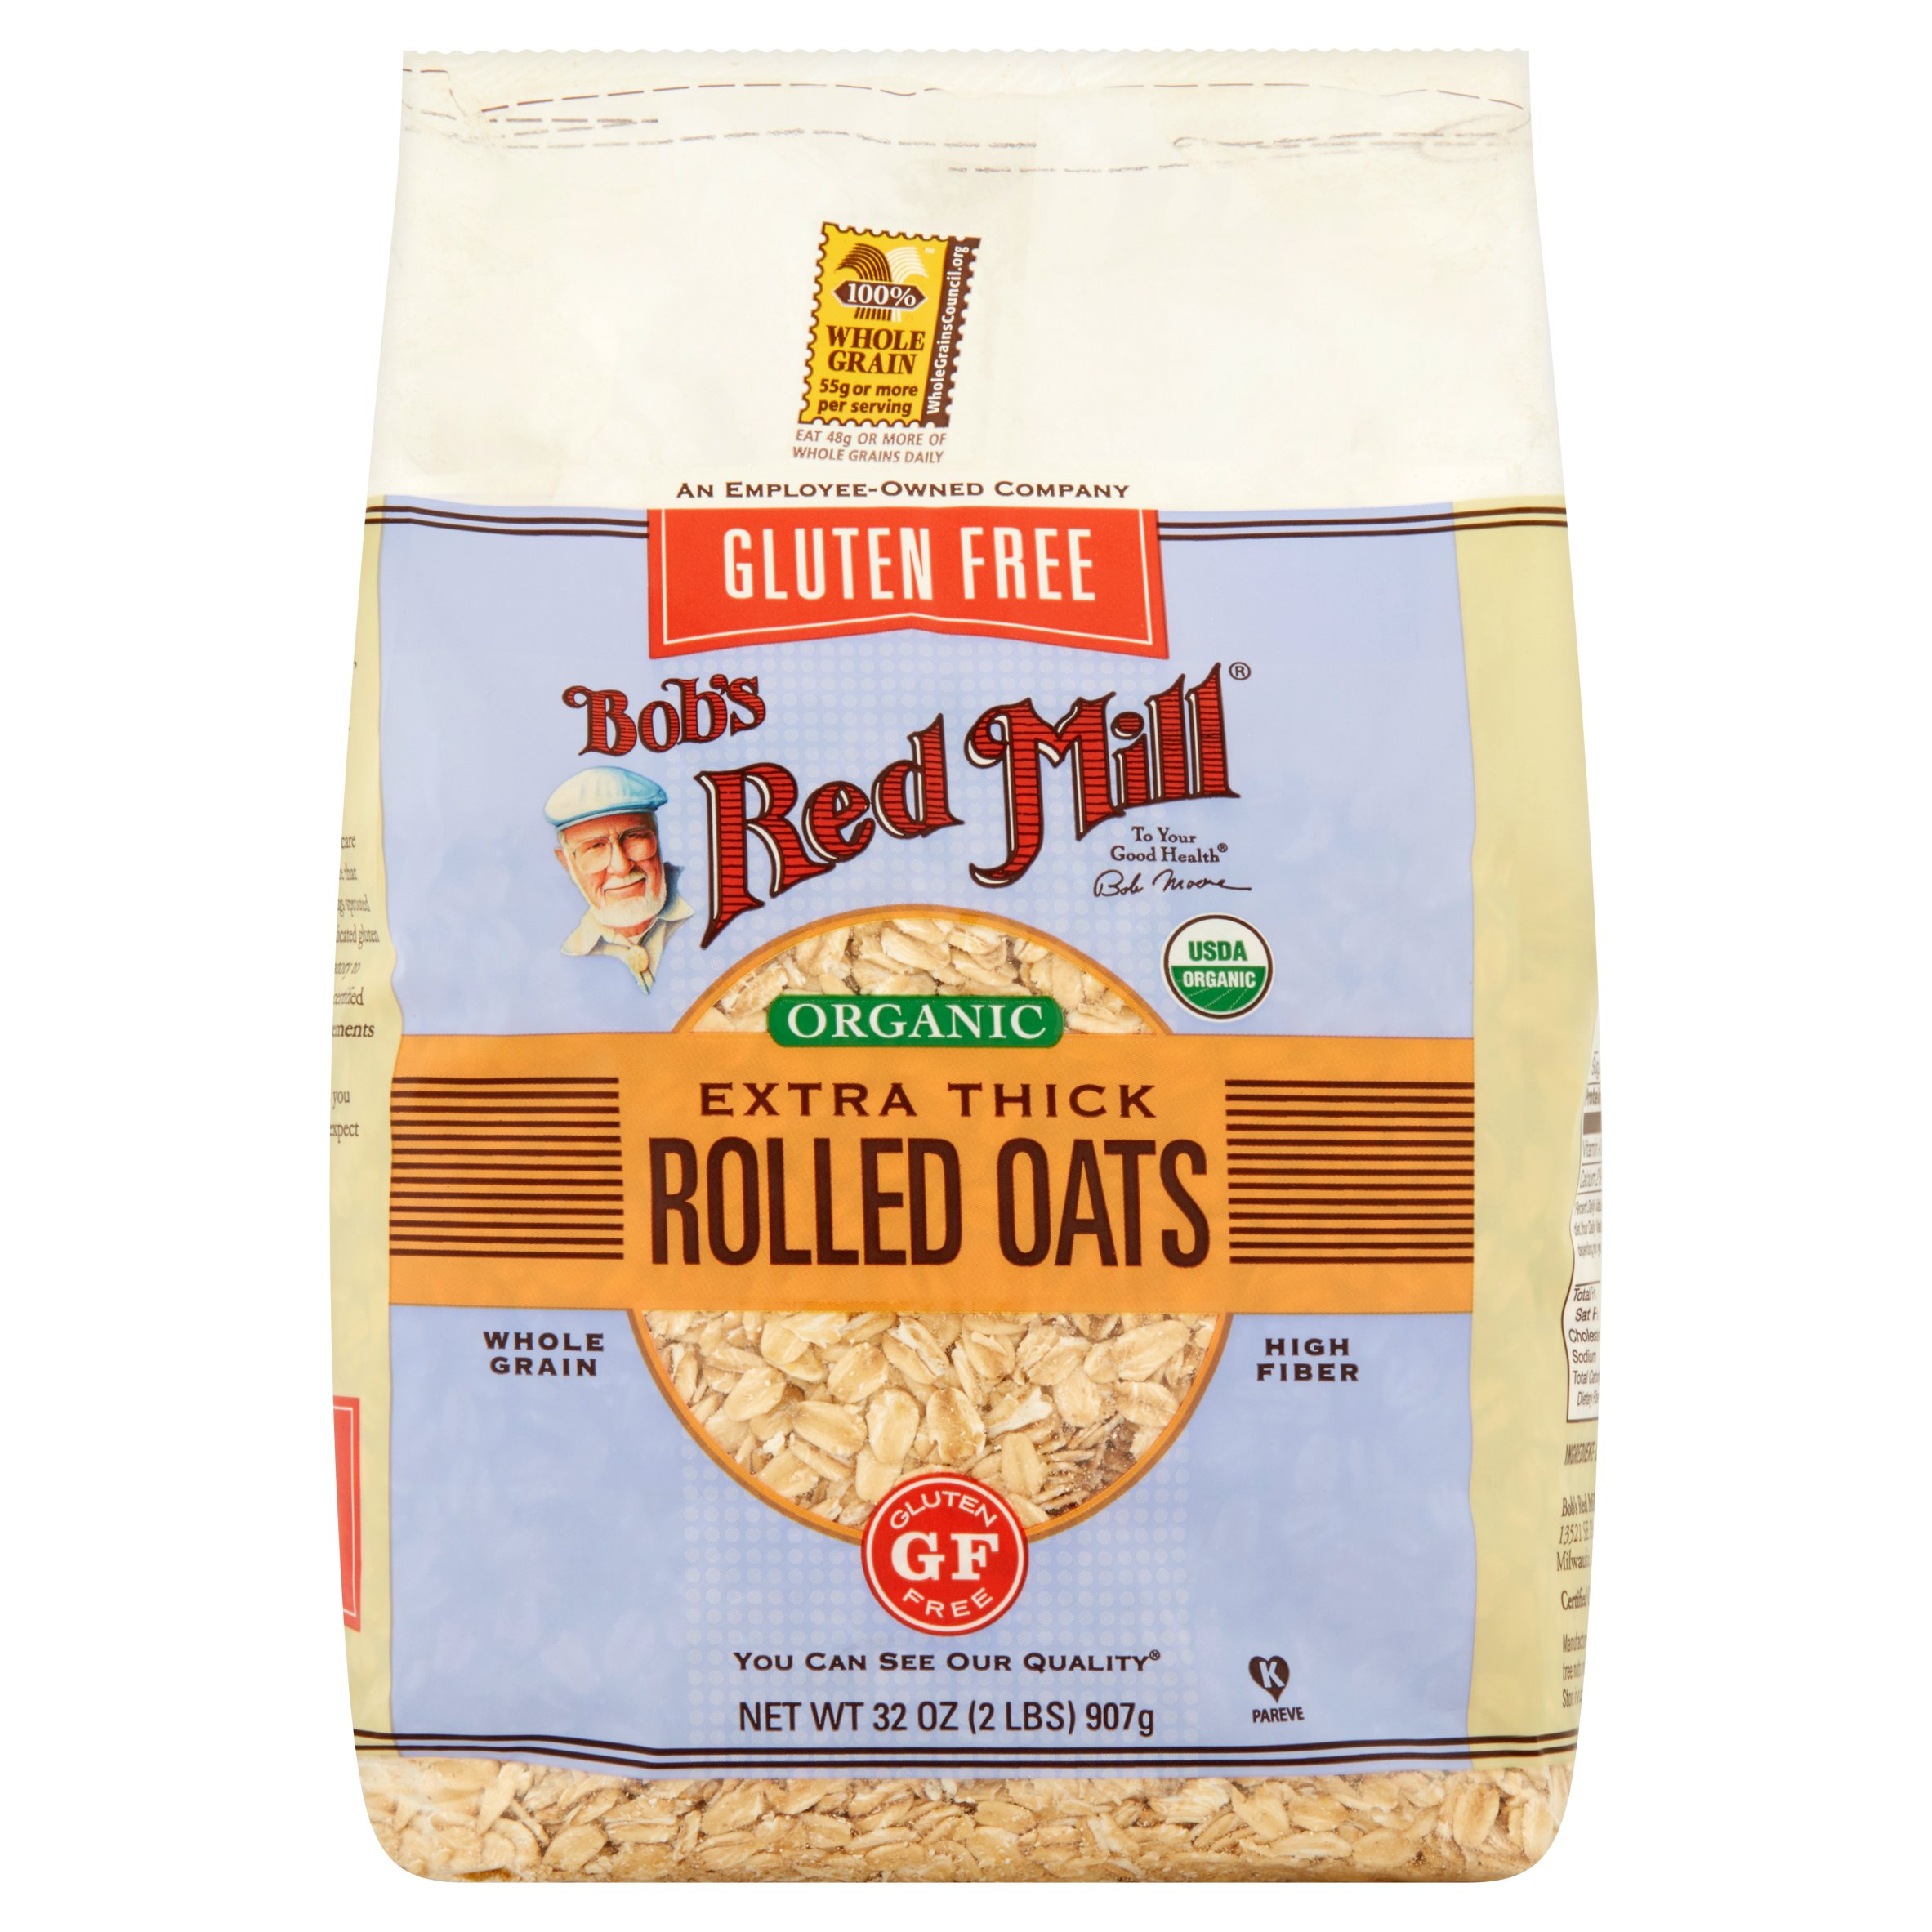 Bob's Red Mill Gluten Free Organic Extra Thick Rolled Oats, 32 oz, 4 pack